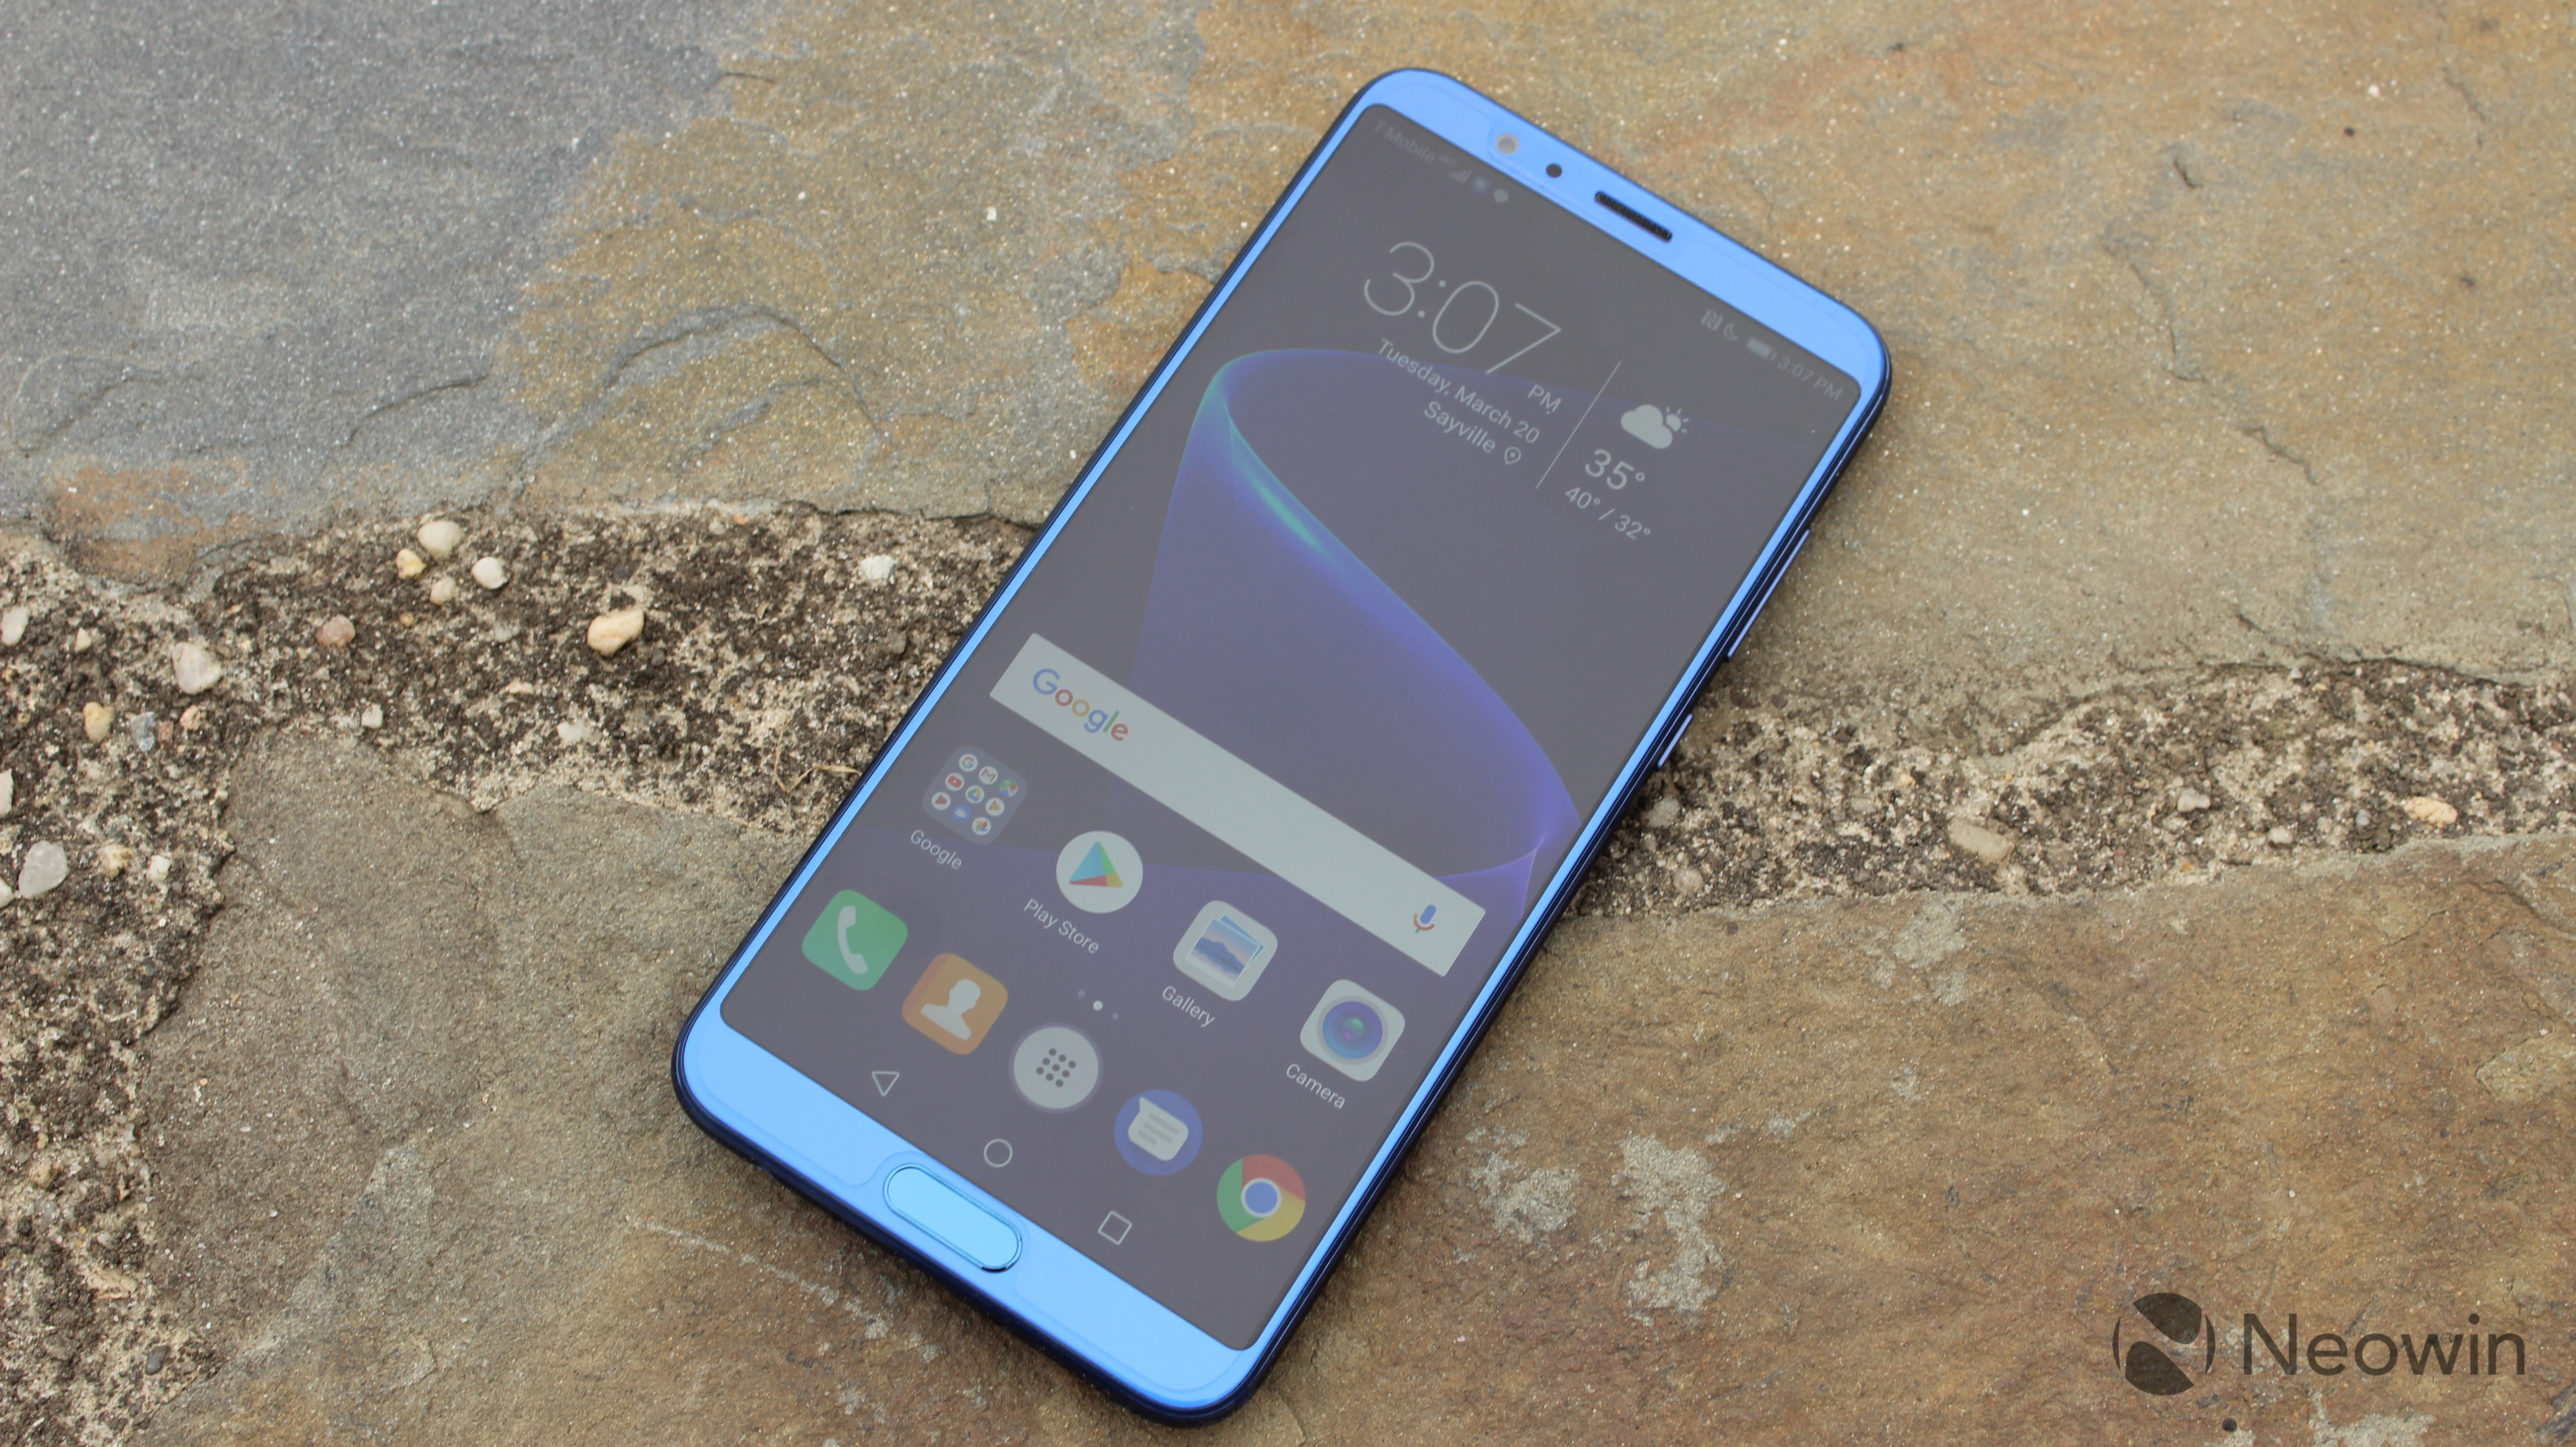 Honor View10 unboxing and first impressions - Neowin